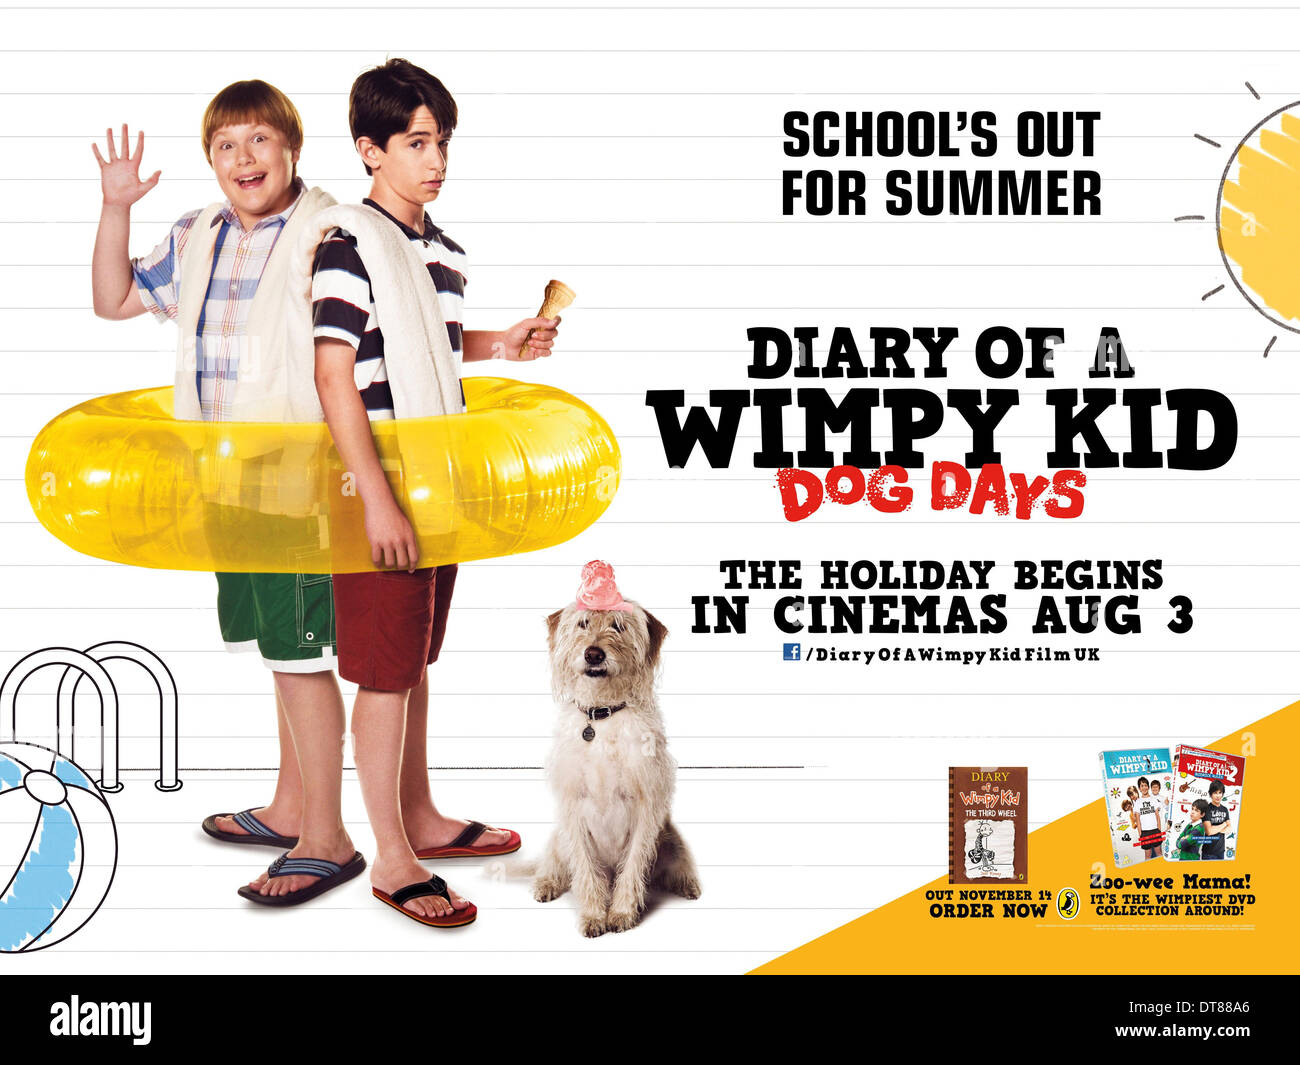 Diary Of The Wimpy Kid Dogs Days Full Movie